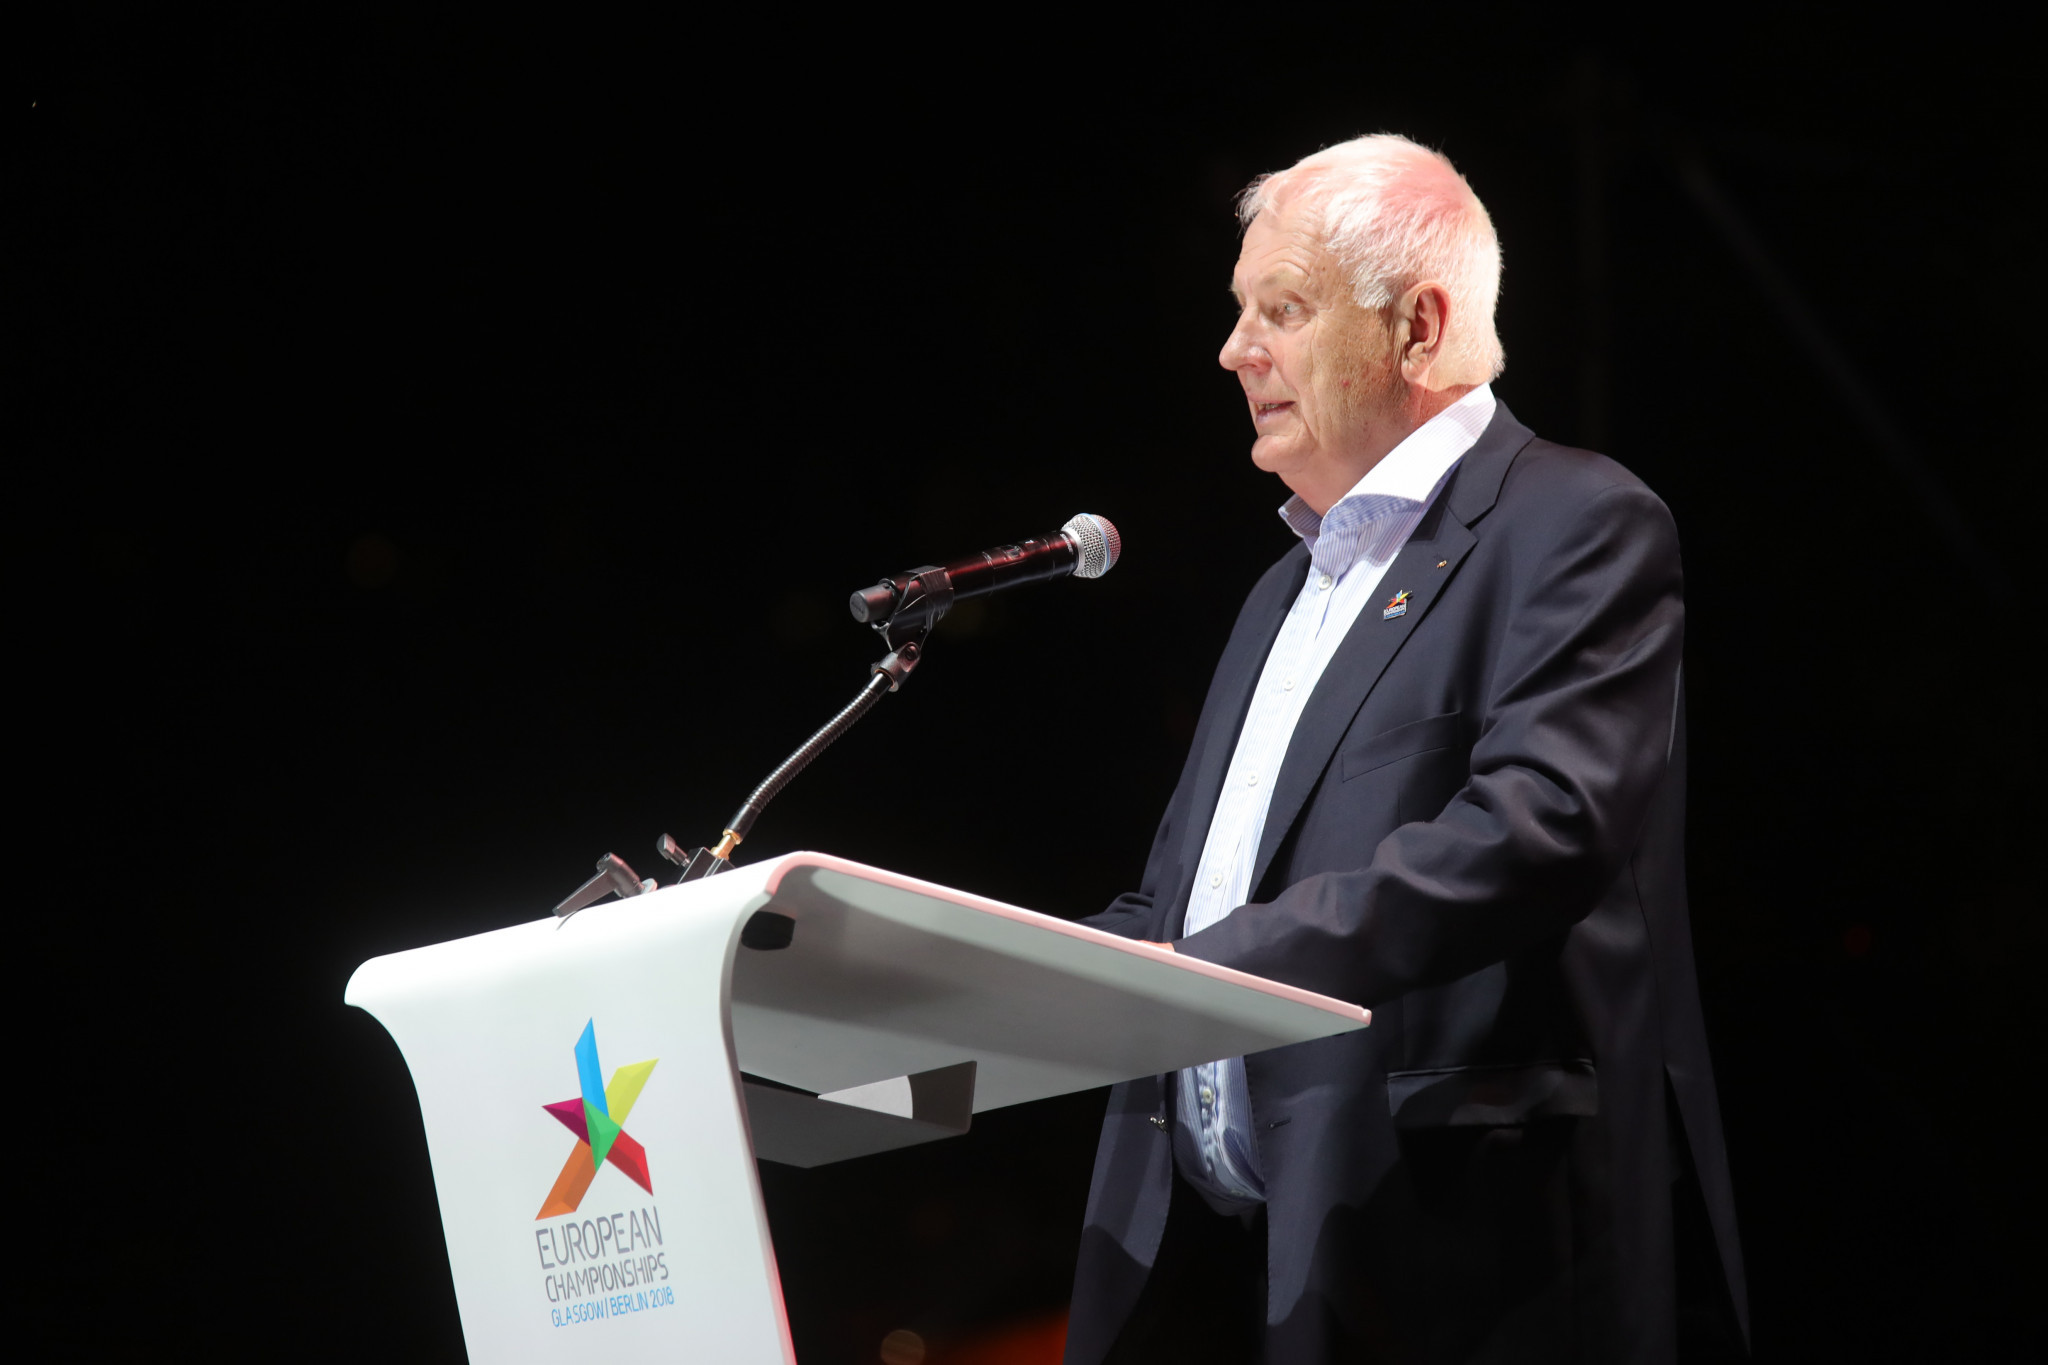 Berlin 2018 was the best European Championships ever, said European Athletics President Svein Arne Hansen ©Getty Images